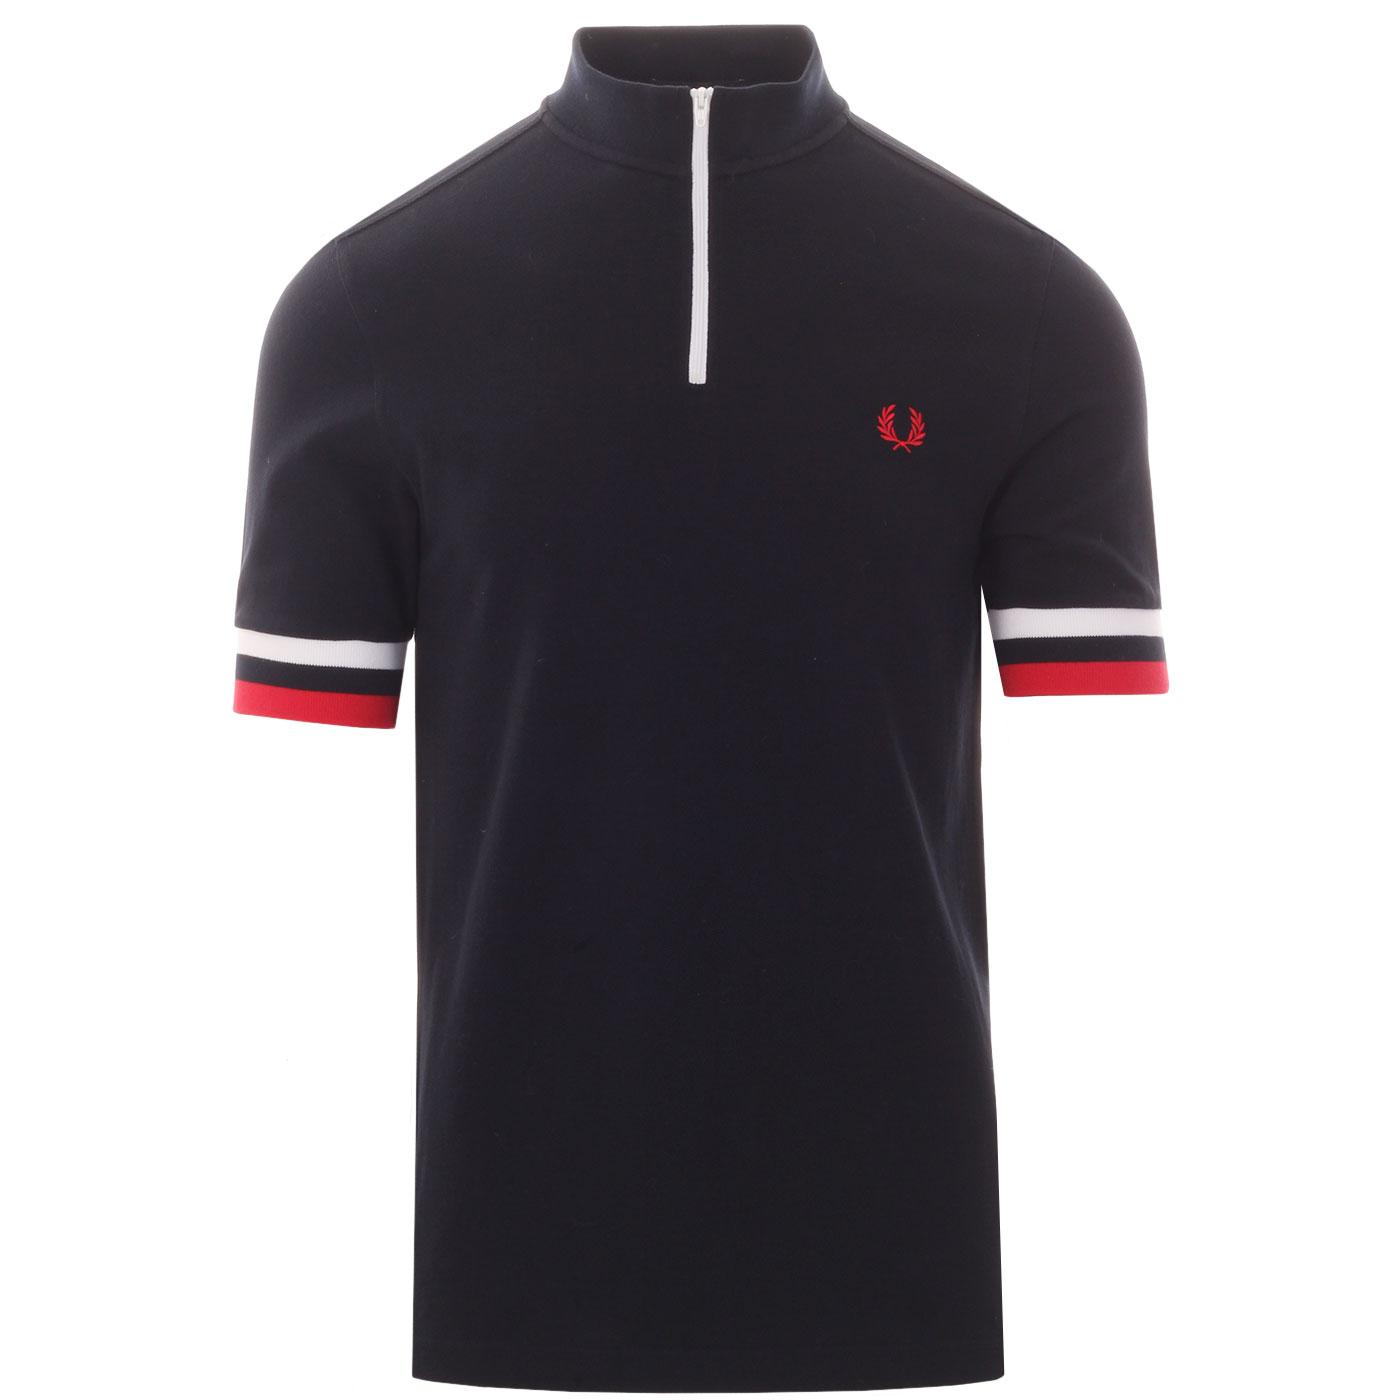 FRED PERRY Men's Retro Mod Pique Cycling Top NAVY